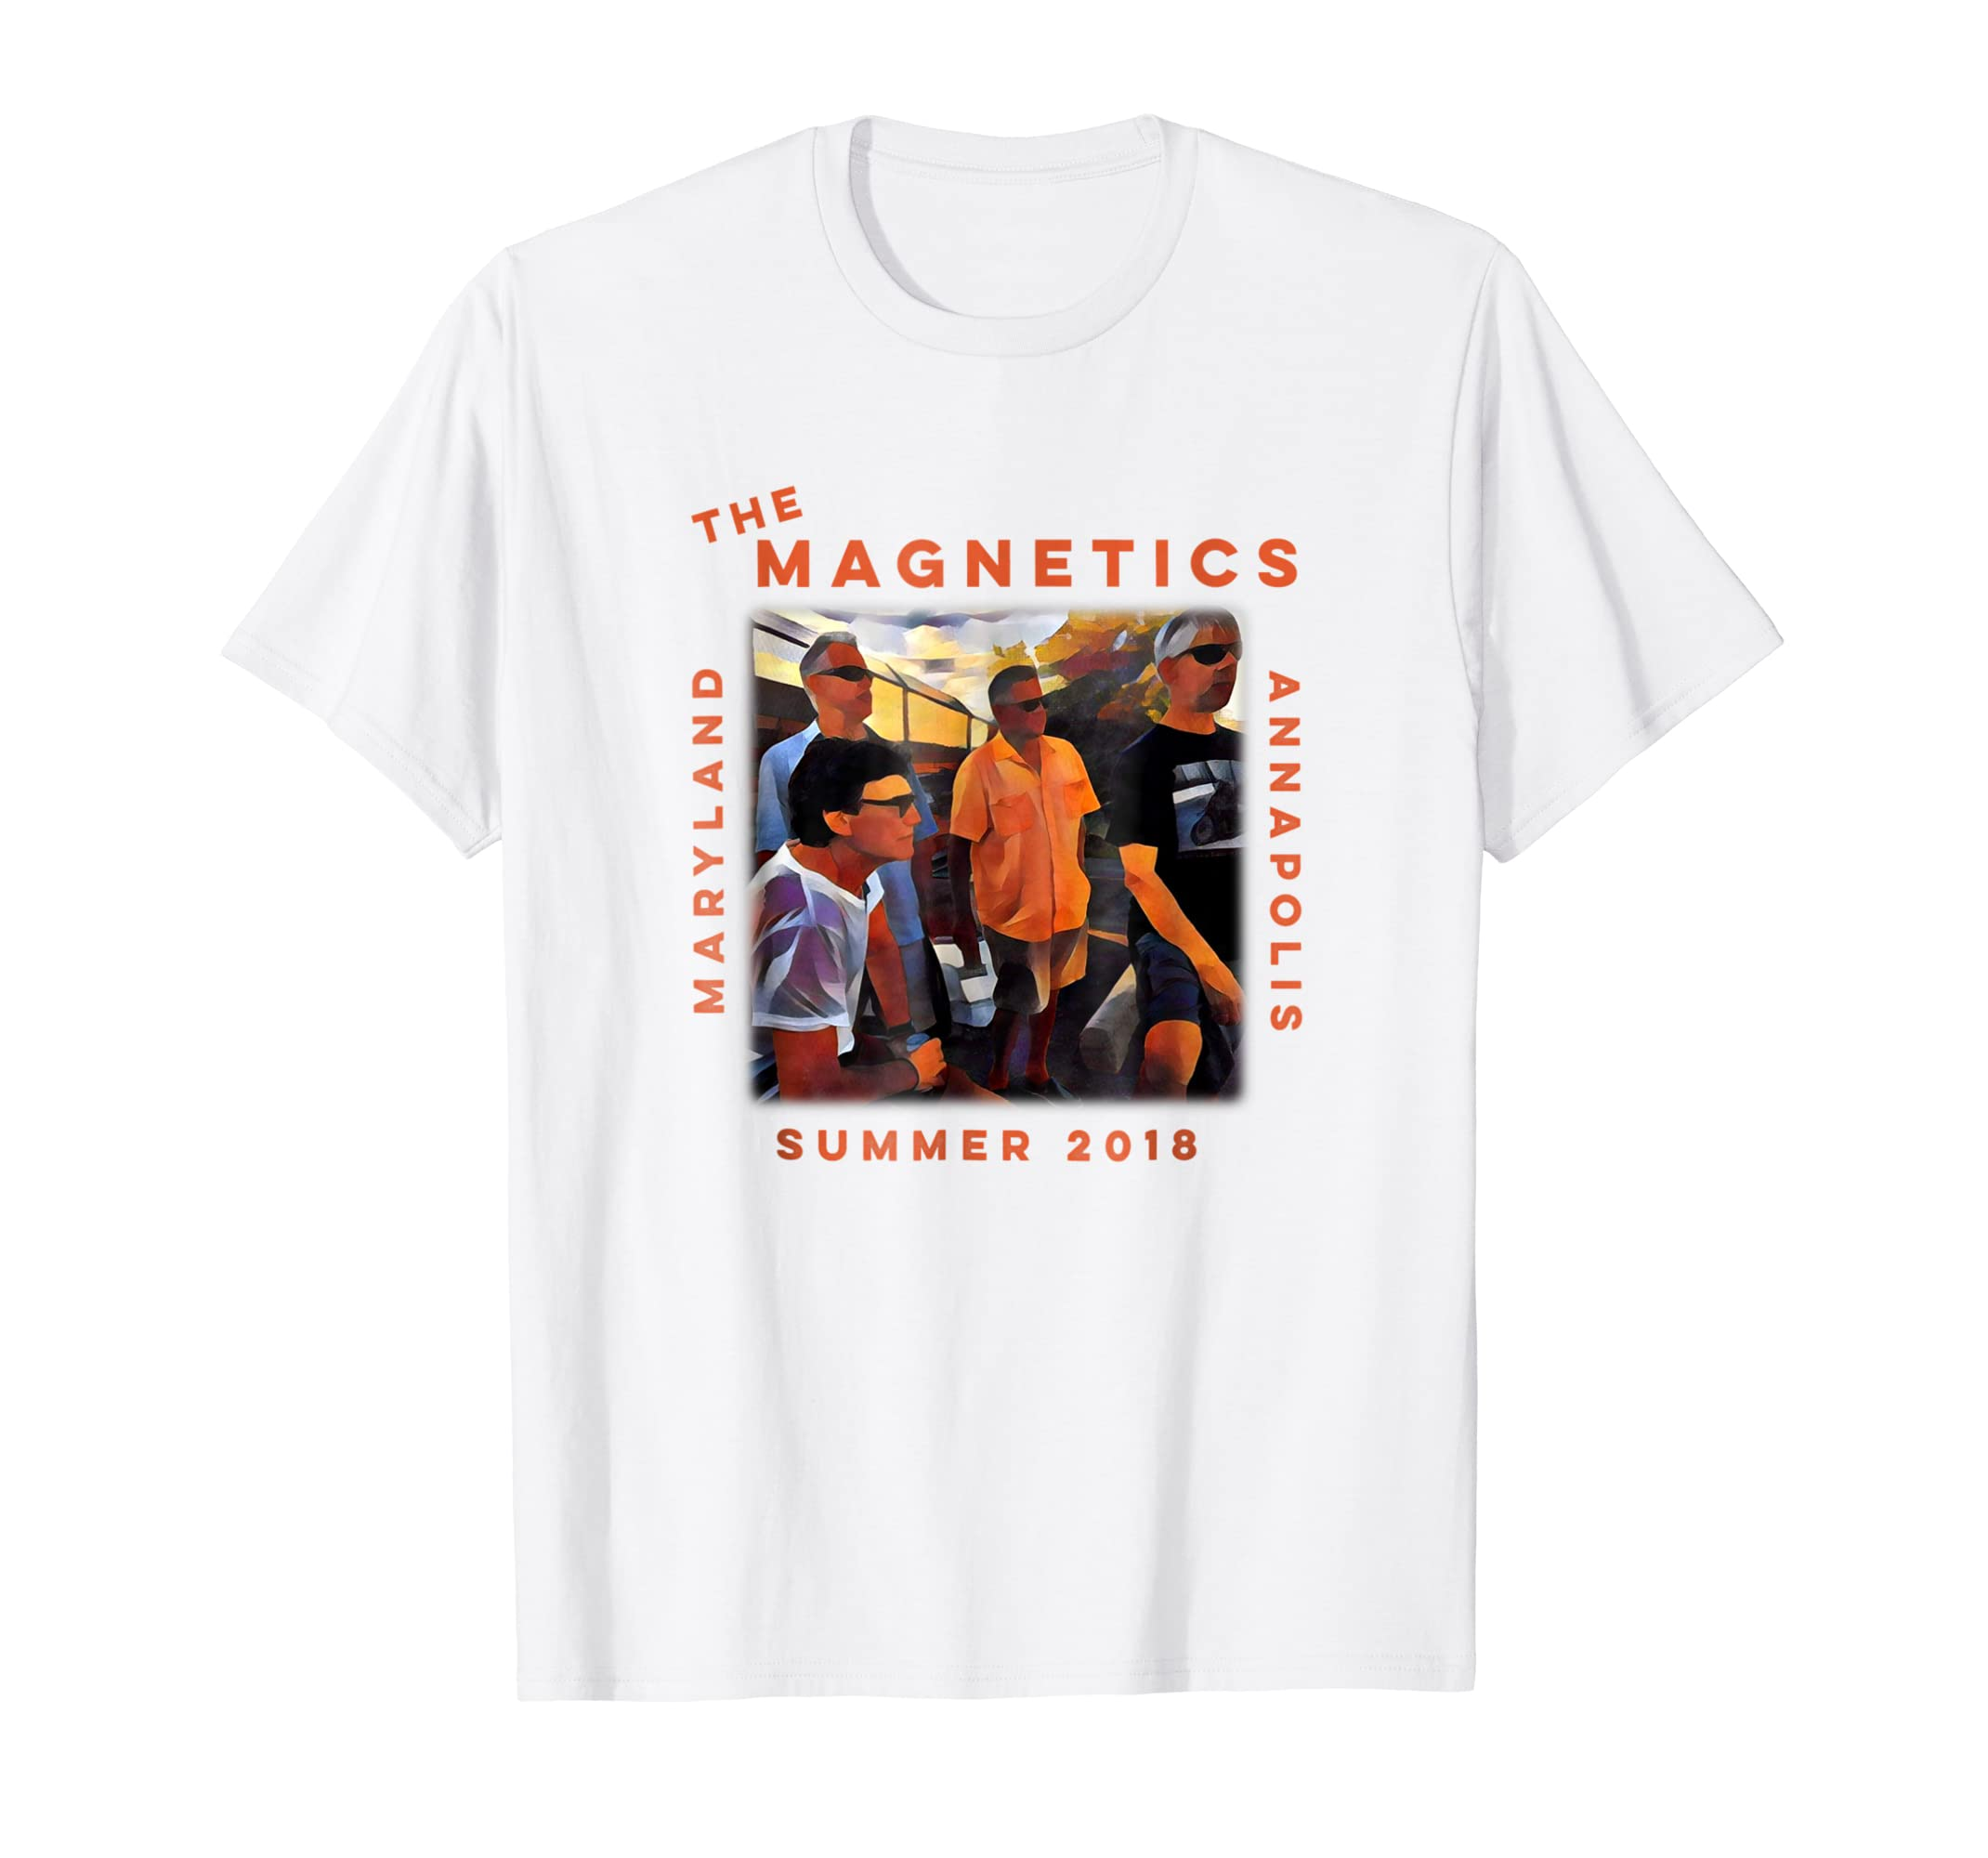 a79191c413b Amazon.com  Magnetics Official Summer 2018 Band T-shirt  Clothing